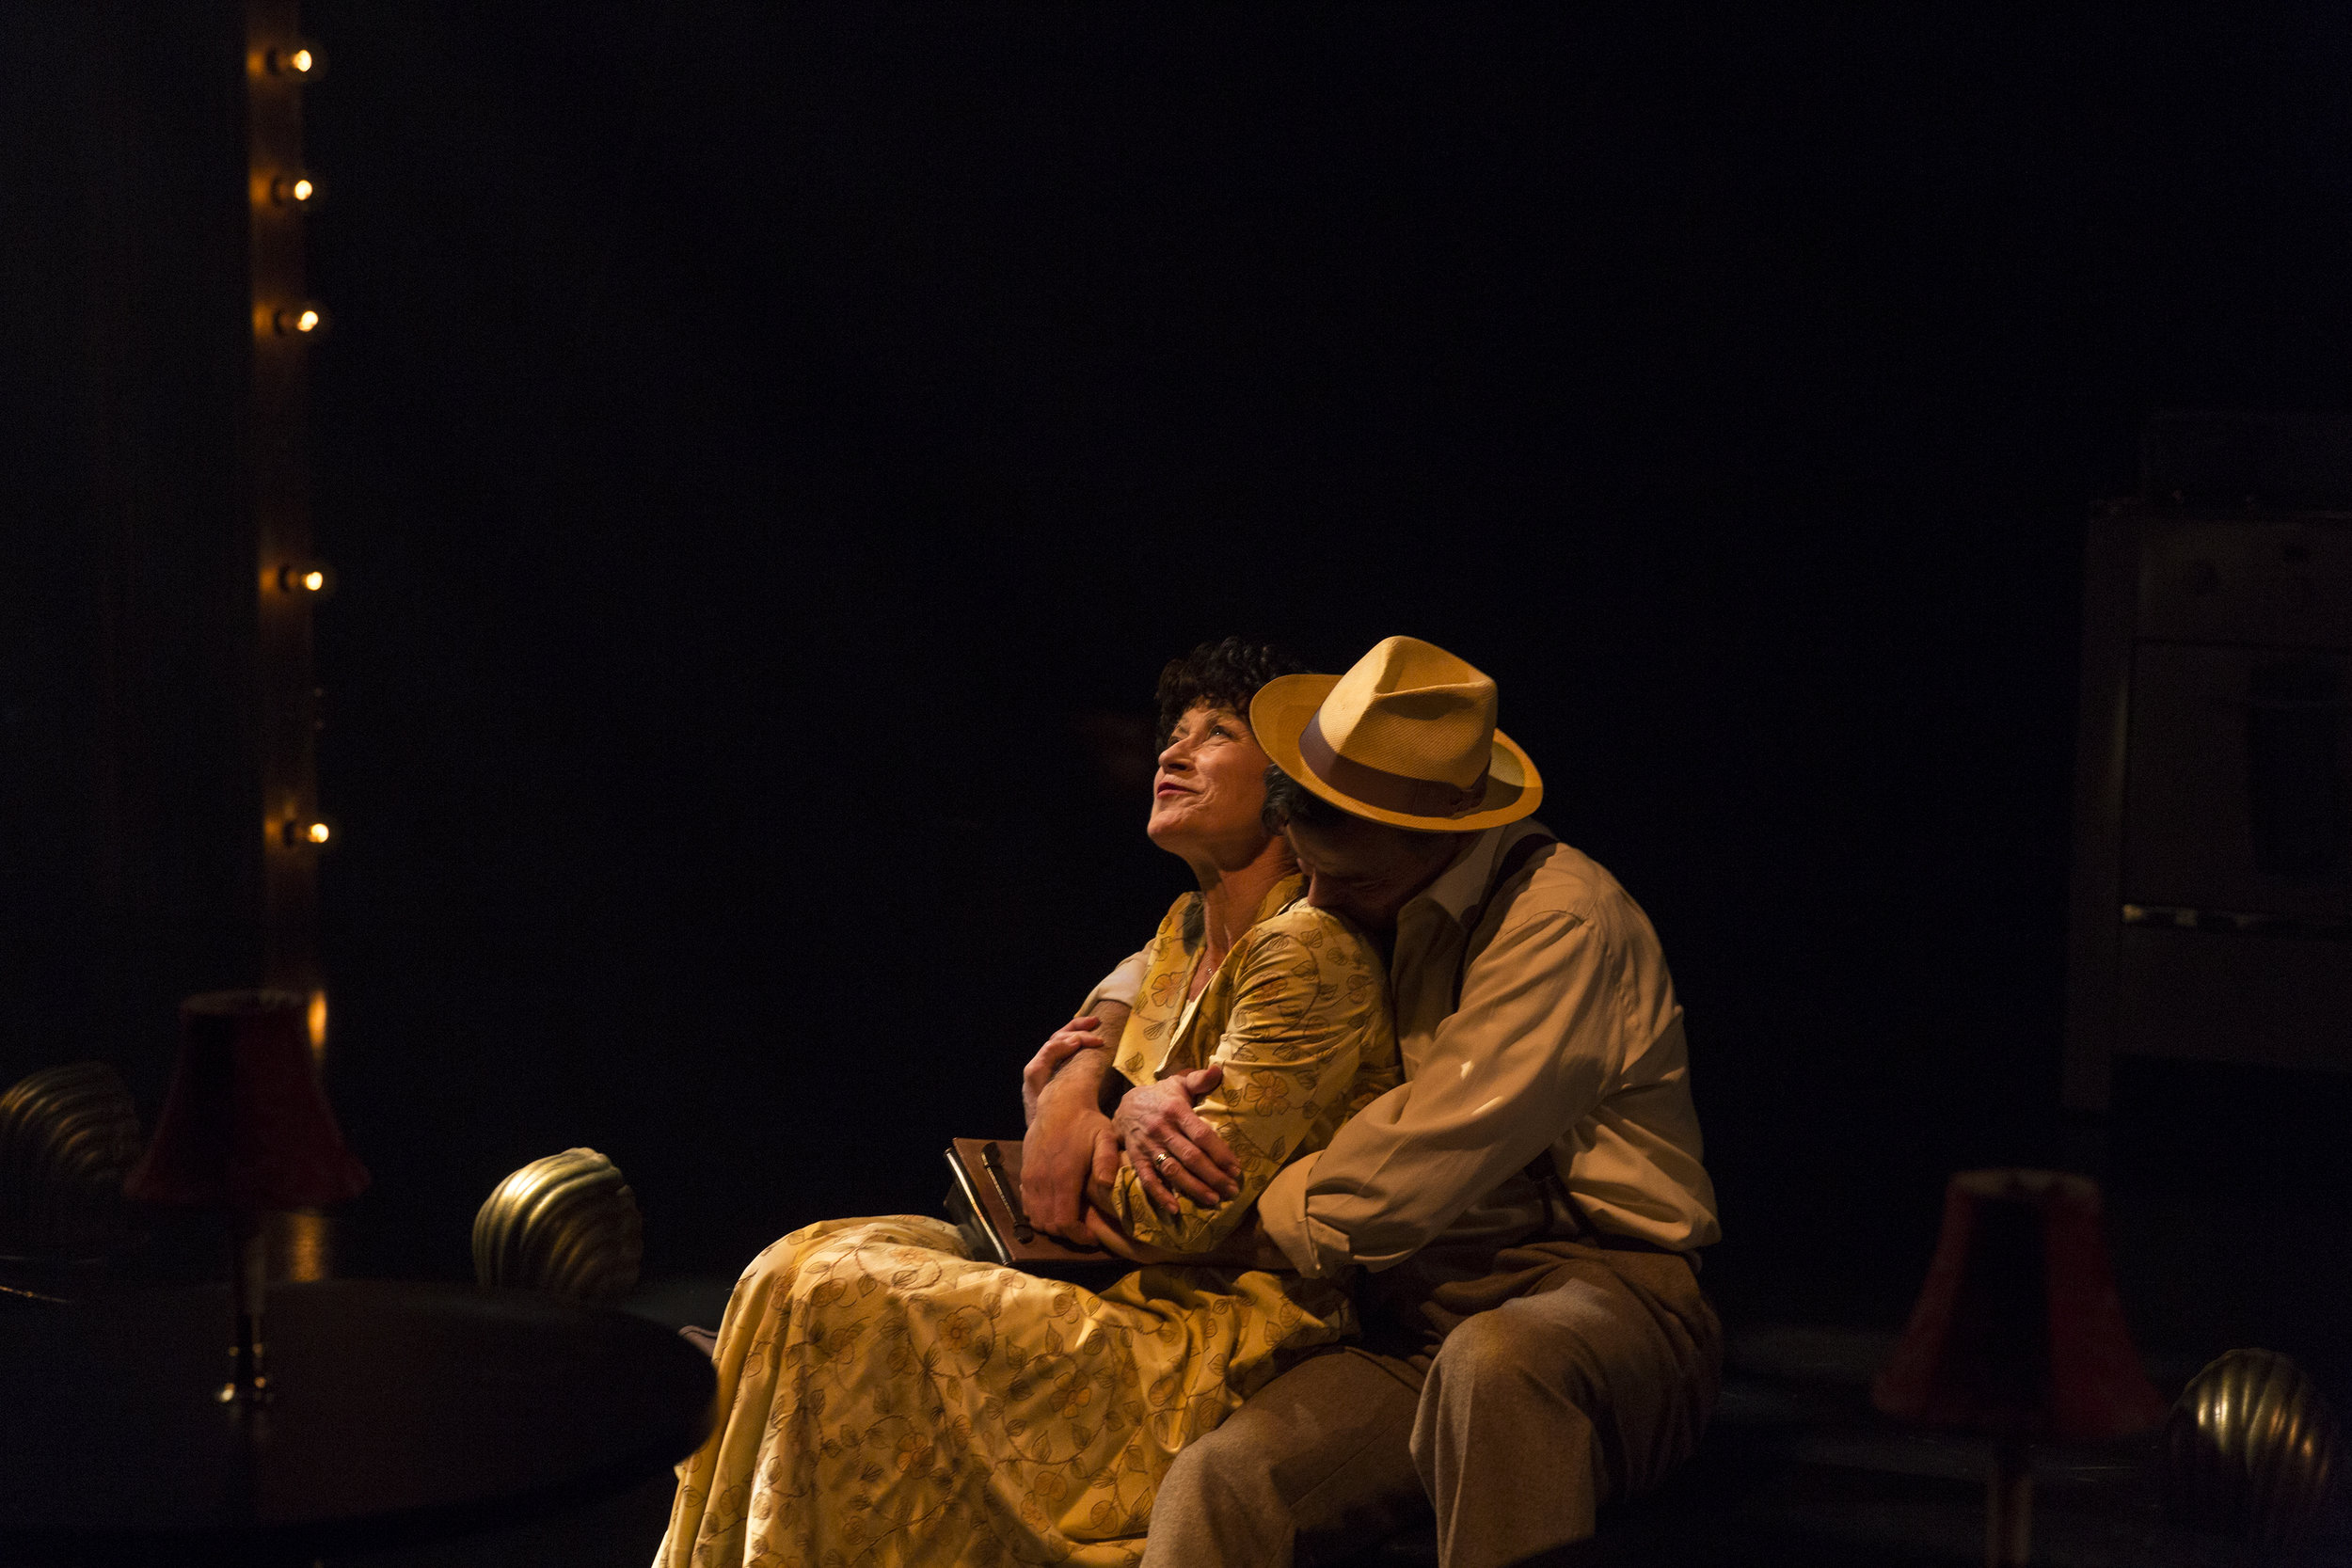 0428_Louise Pitre, Joe Matheson_The Angel and the Sparrow 2018_photo by Leslie Schachter.jpg